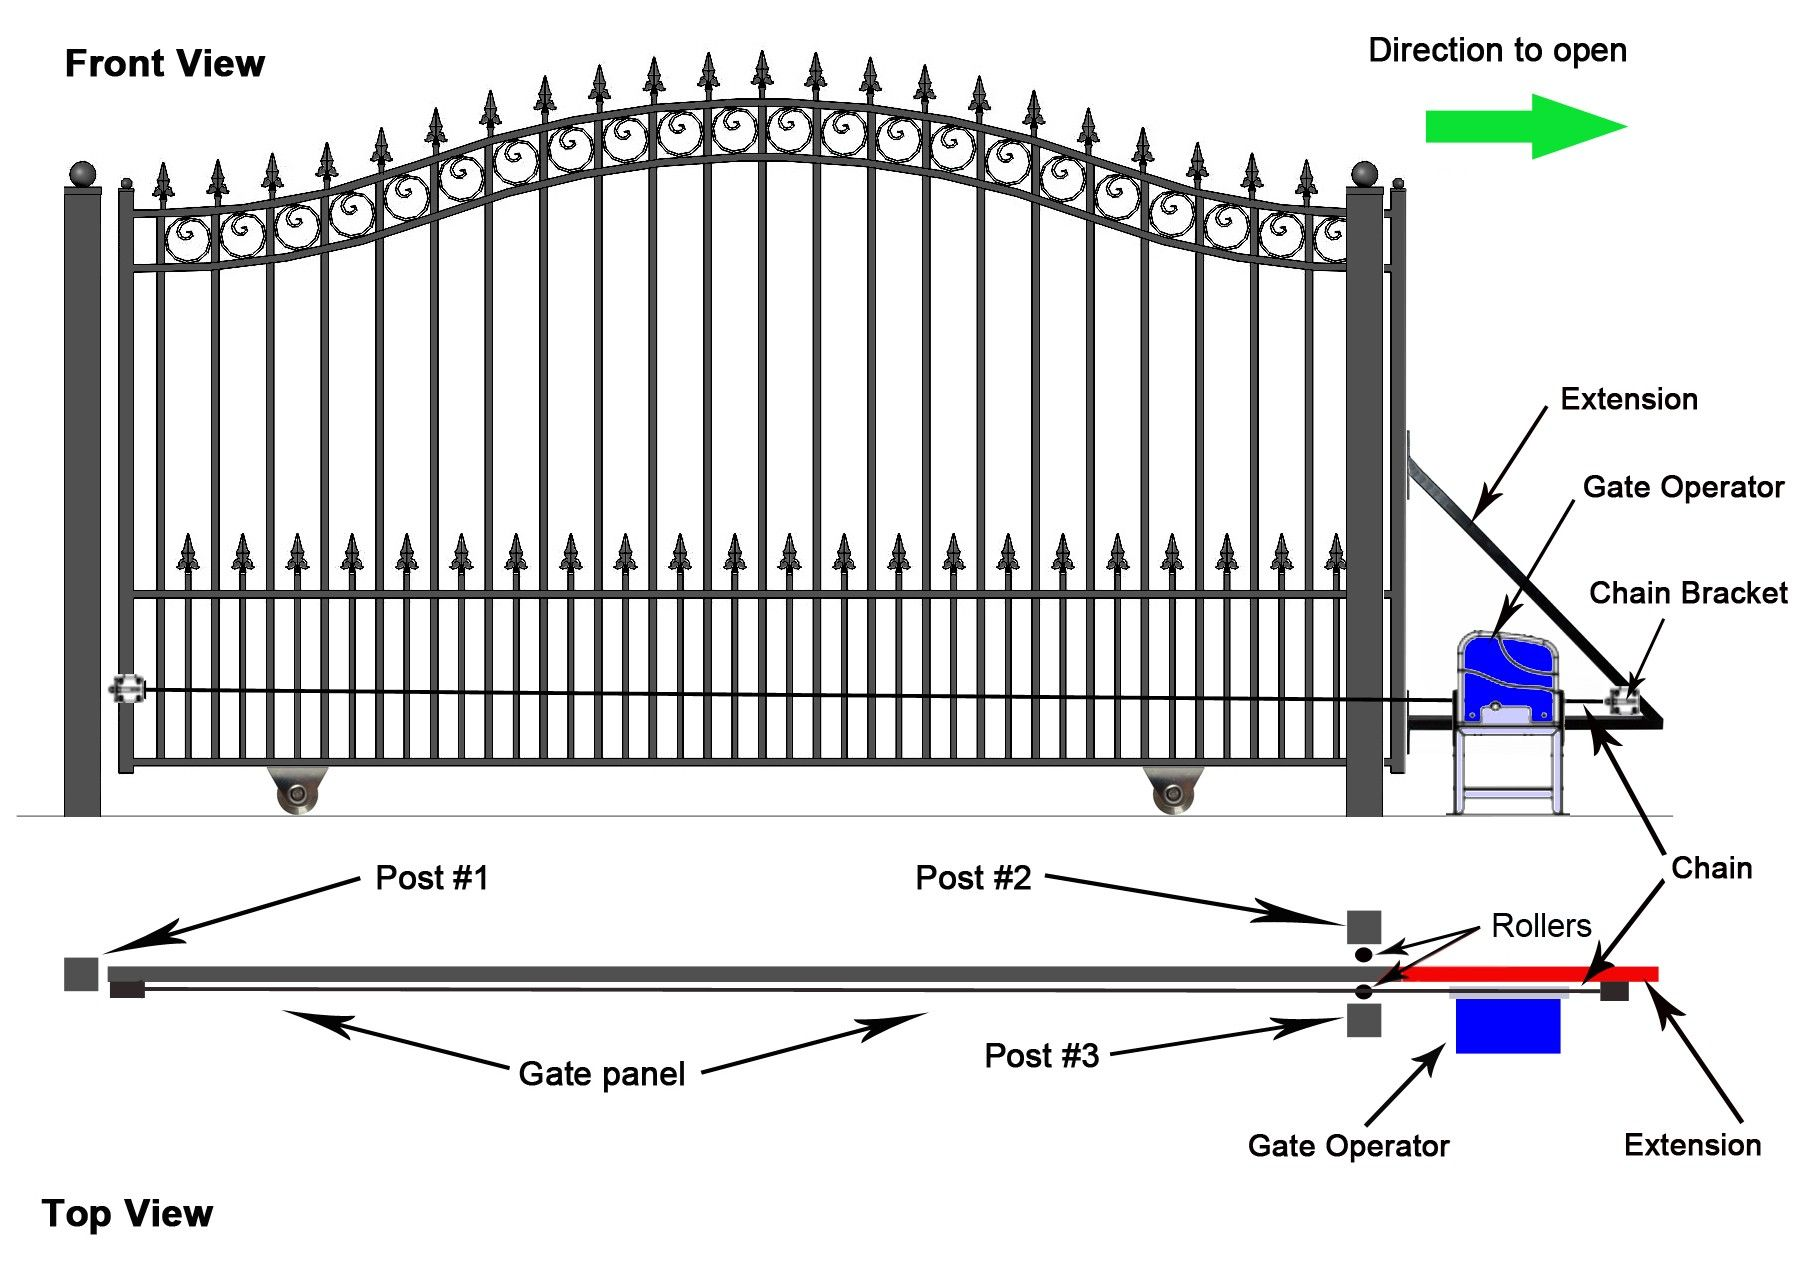 Wiring Diagram For Auto Gate Diagram Diagramtemplate Diagramsample Sliding Fence Gate Sliding Gate Sliding Gate Opener